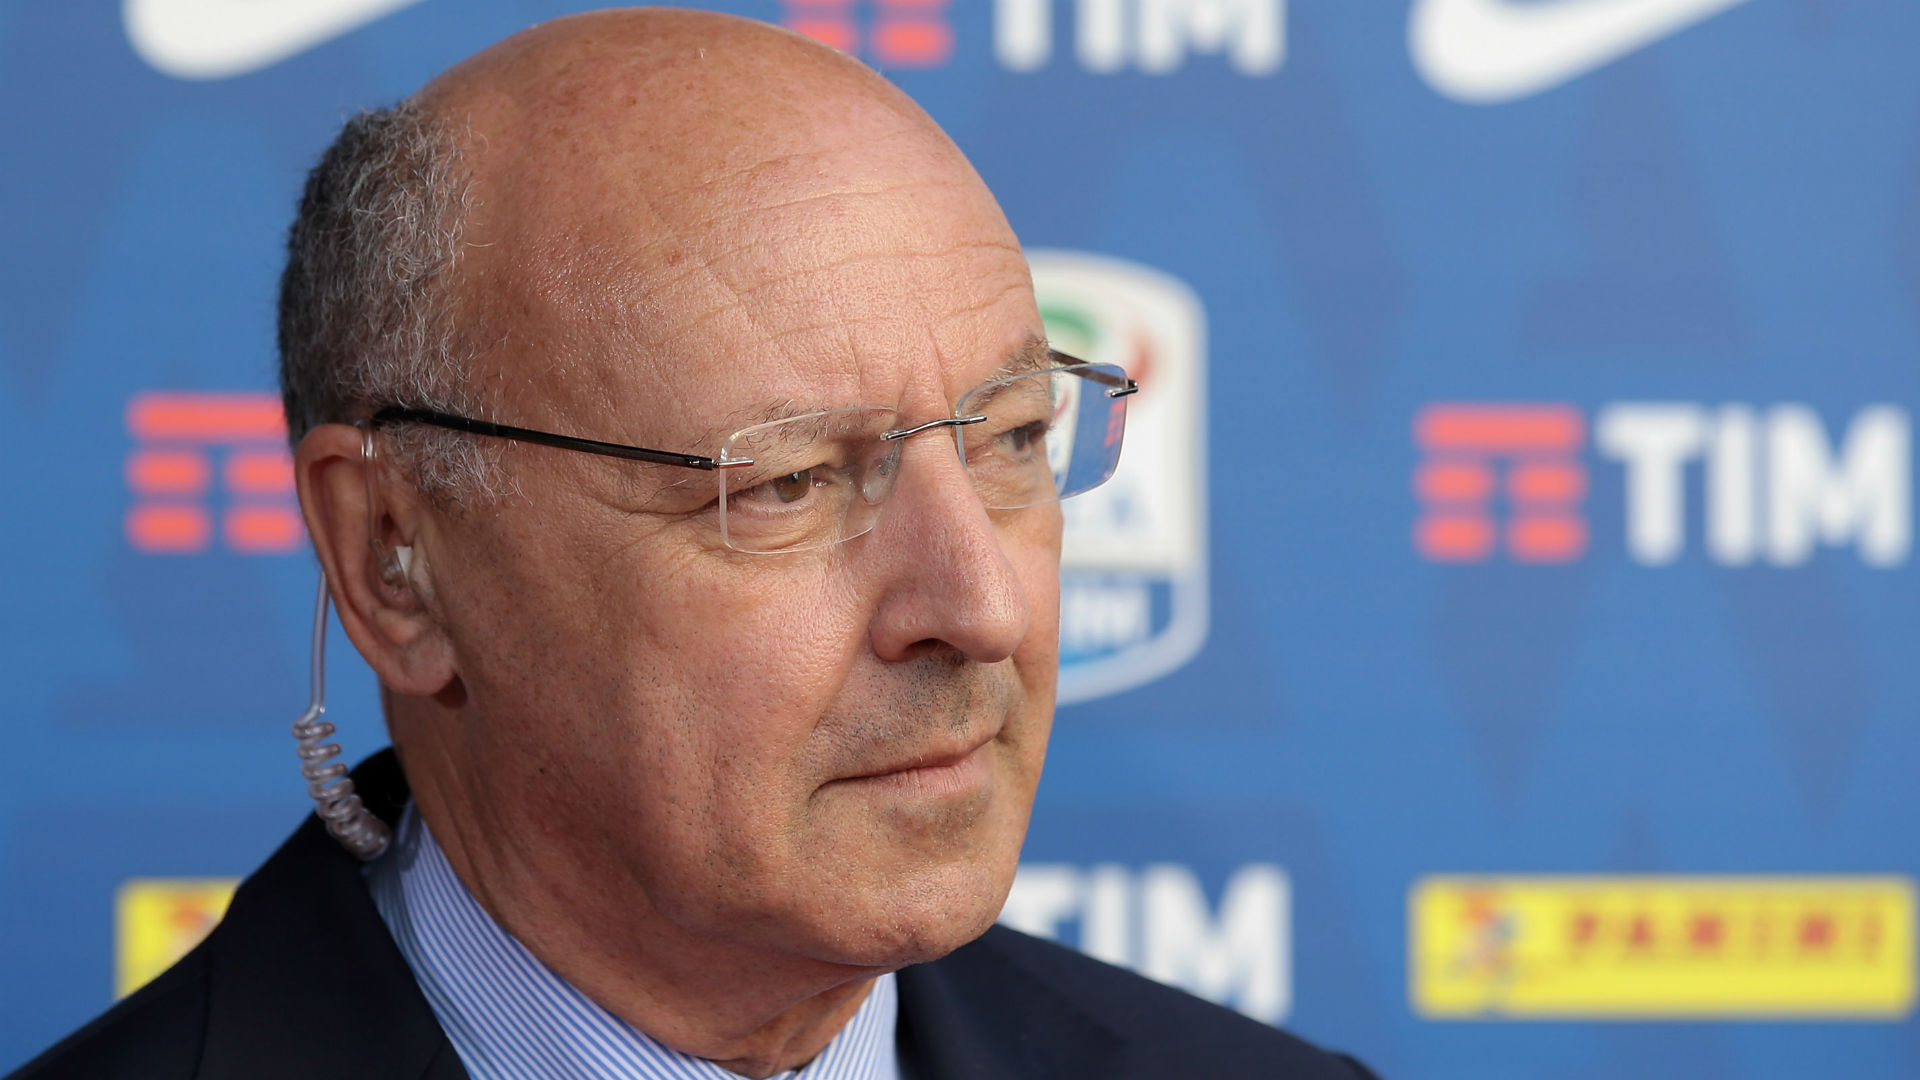 Former Juve CEO Marotta takes over at Inter